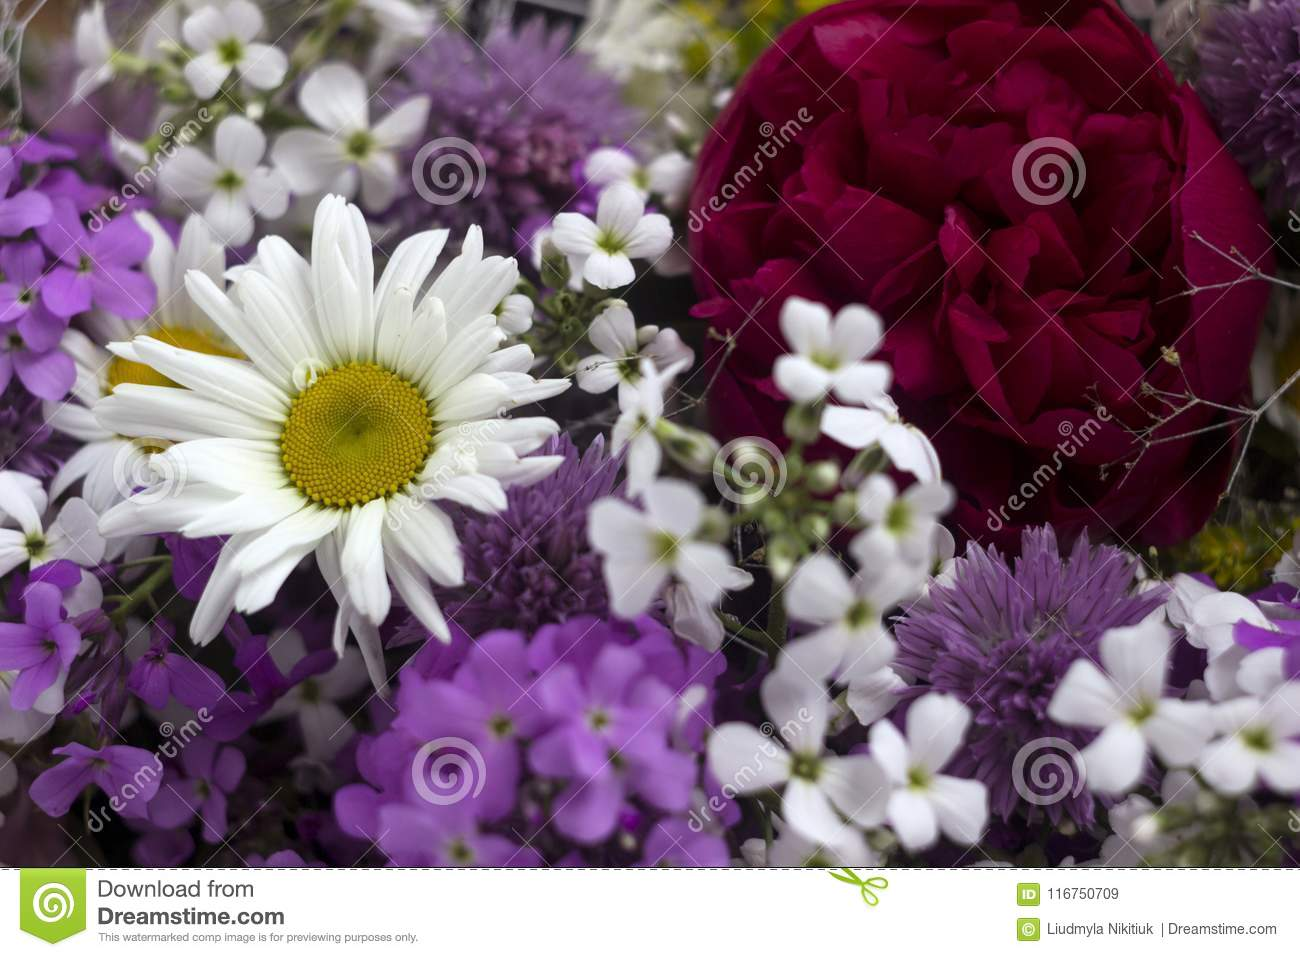 Many Different Kinds Of Flowers Purple And Violet Phlox Chamomile